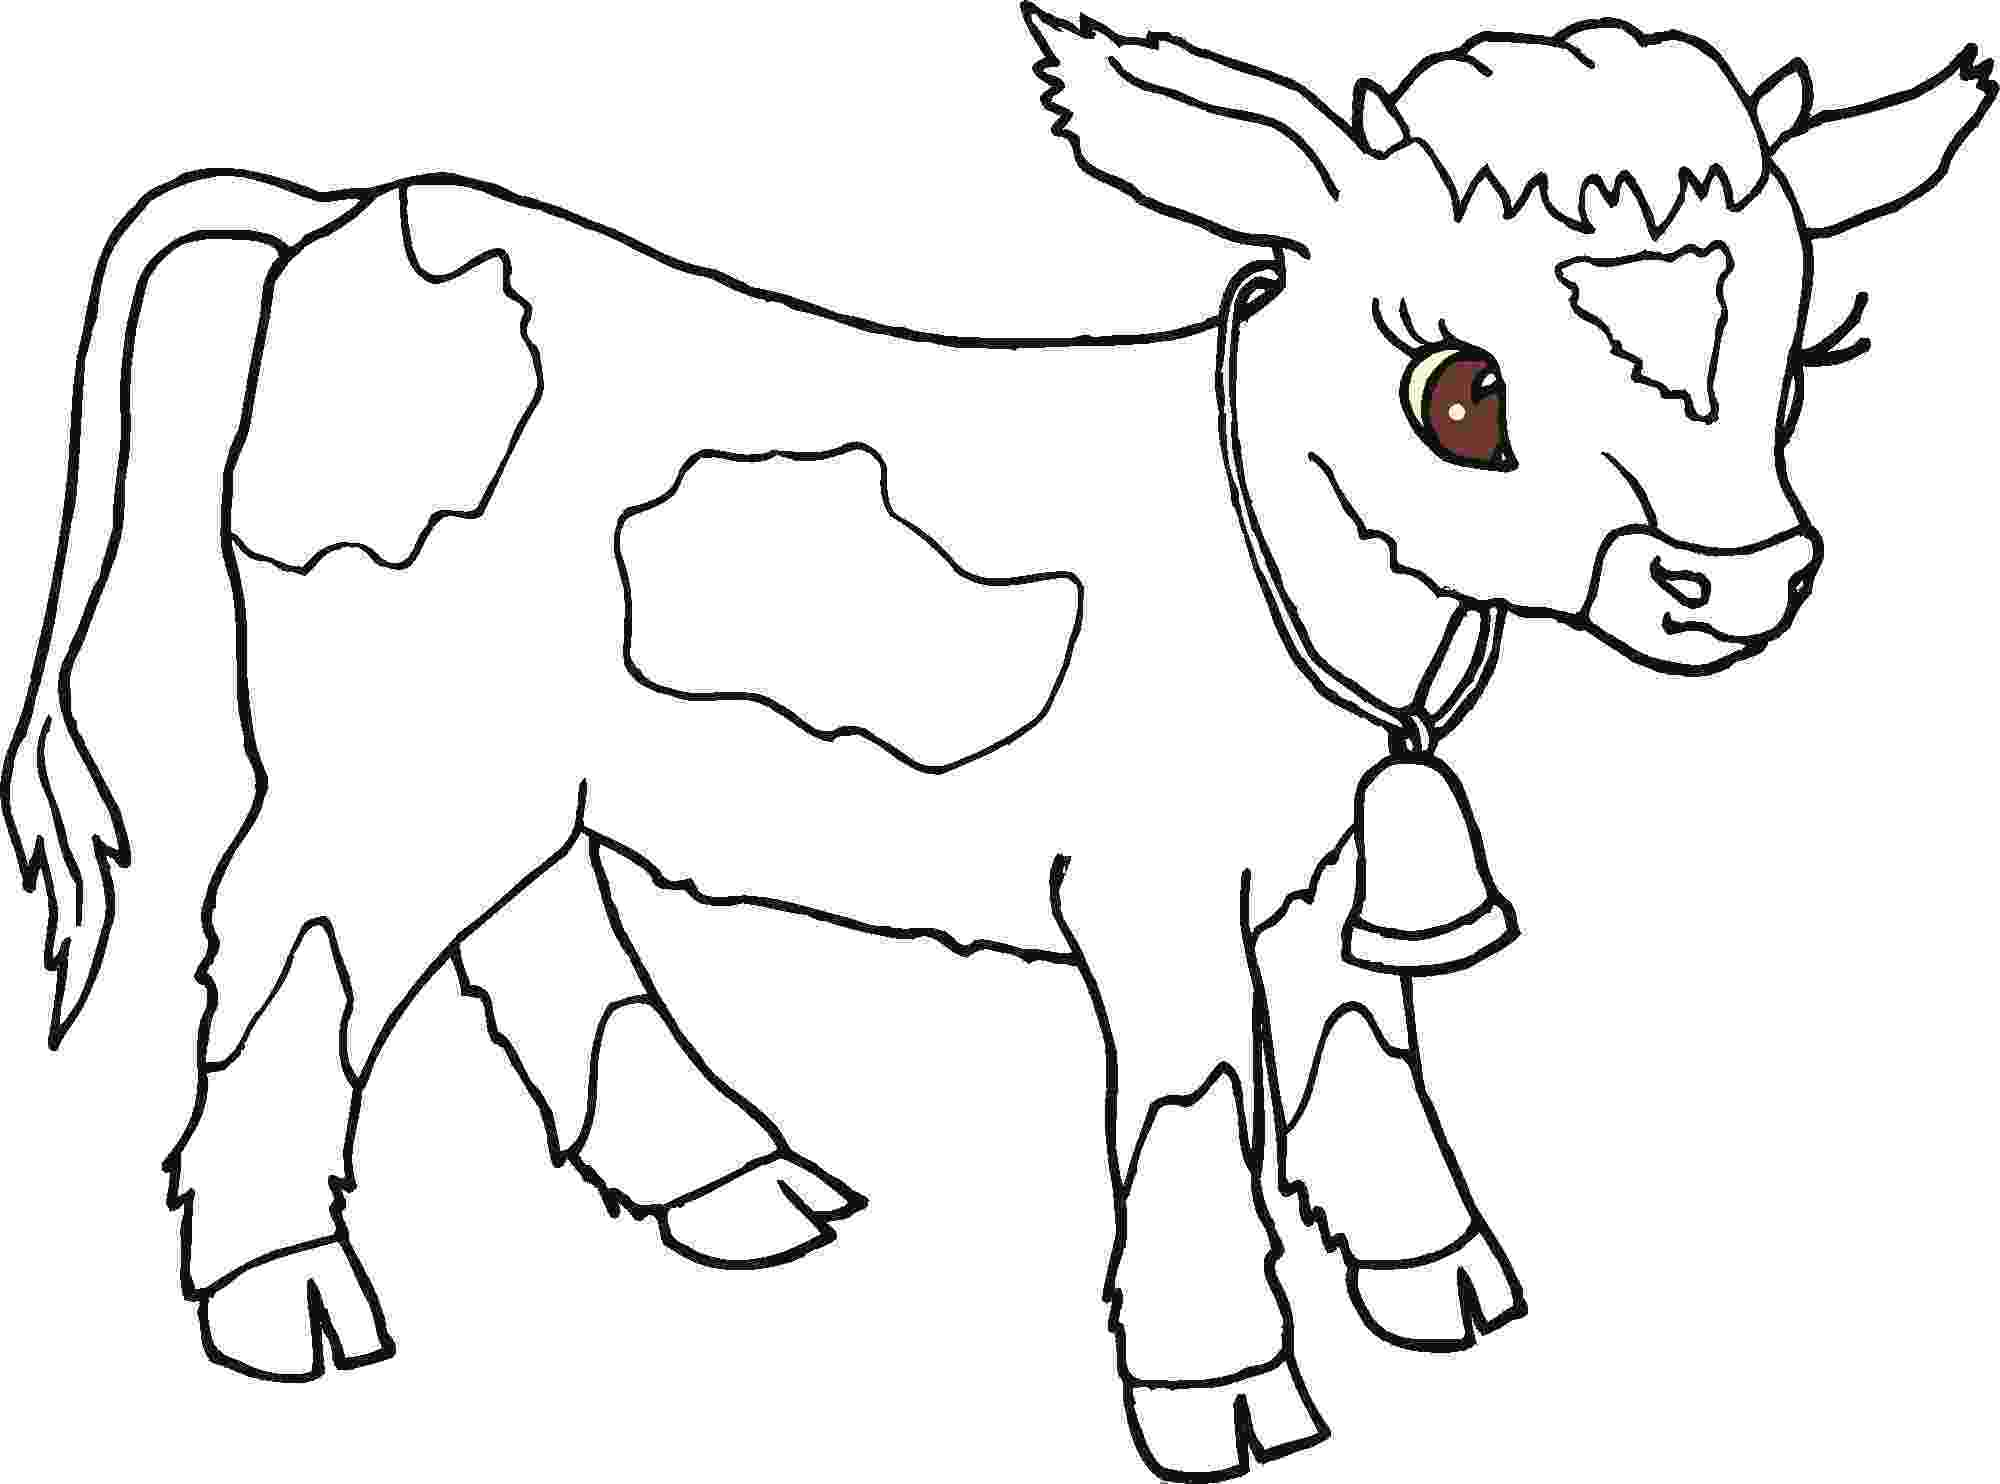 cow coloring pages cow coloring page super simple coloring cow pages